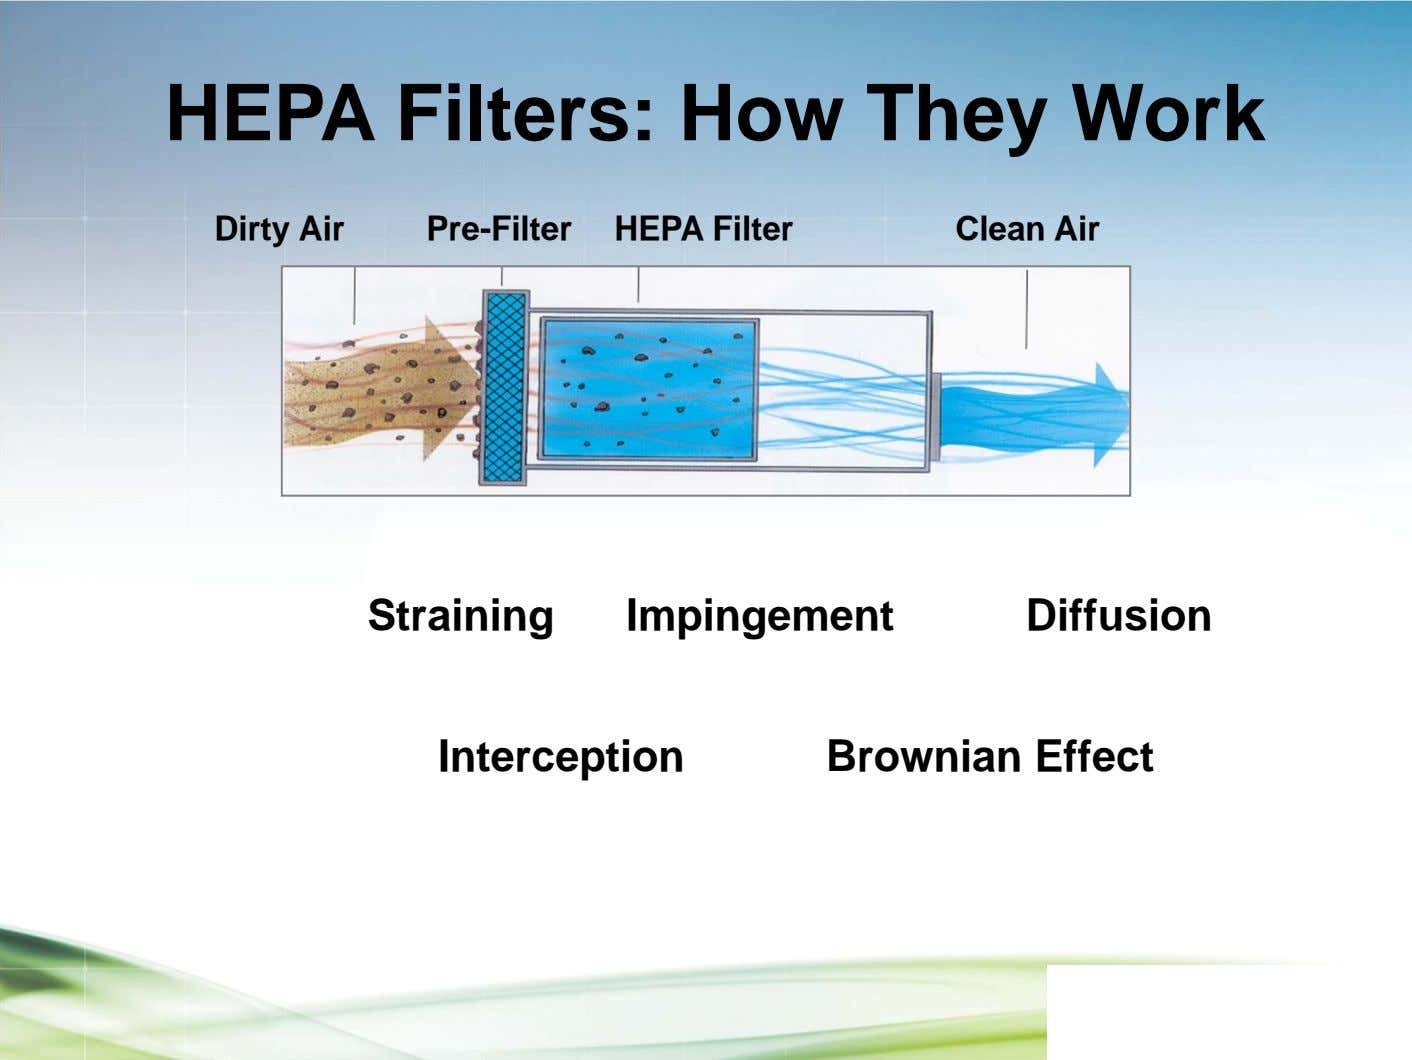 HEPA Filters: How They Work Dirty Air Pre-Filter HEPA Filter Clean Air Straining Impingement Diffusion